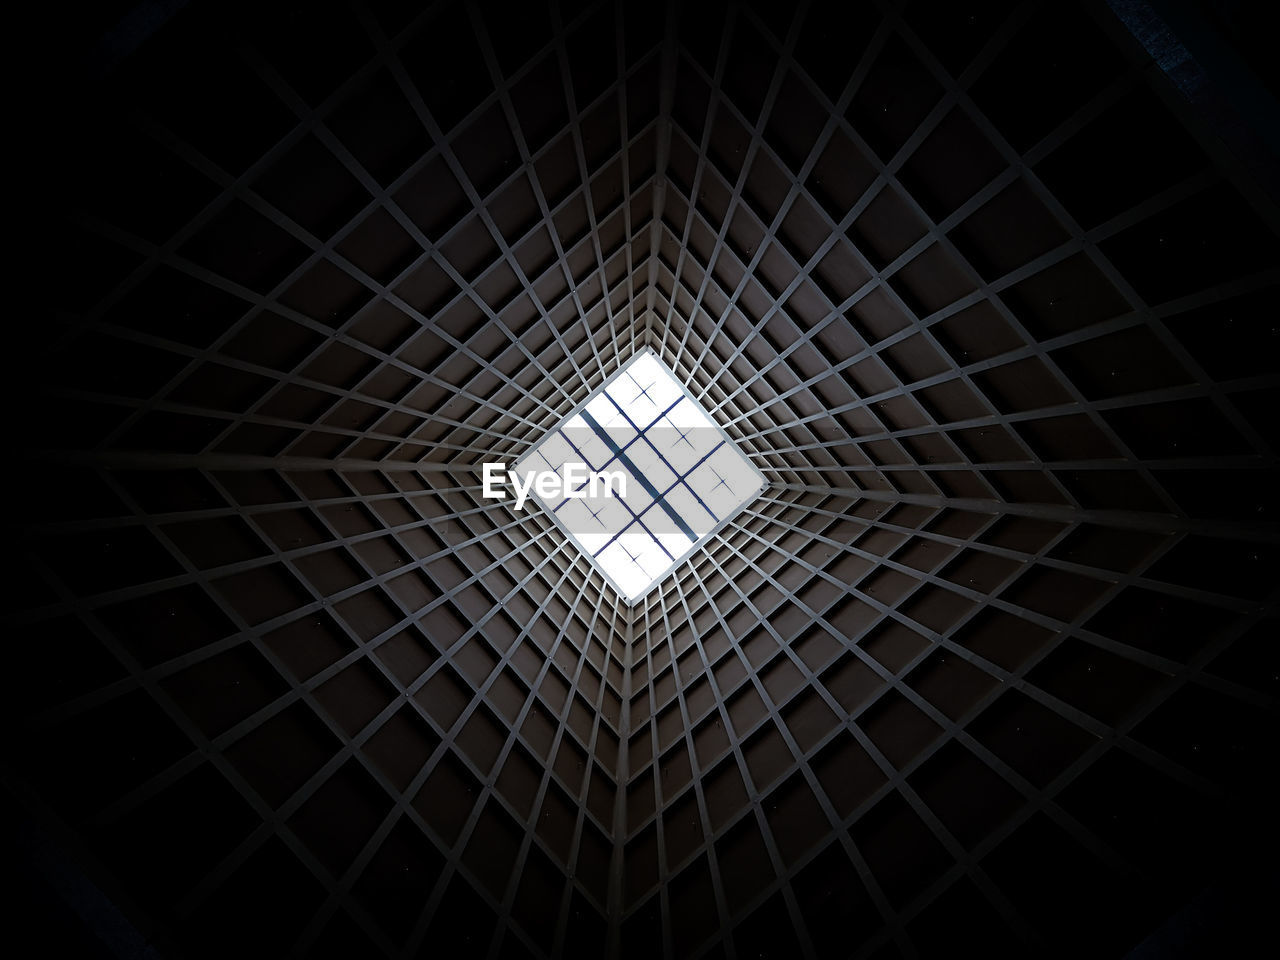 pattern, geometric shape, architecture, ceiling, indoors, shape, low angle view, built structure, directly below, design, no people, hexagon, full frame, skylight, backgrounds, window, circle, architectural feature, illuminated, square shape